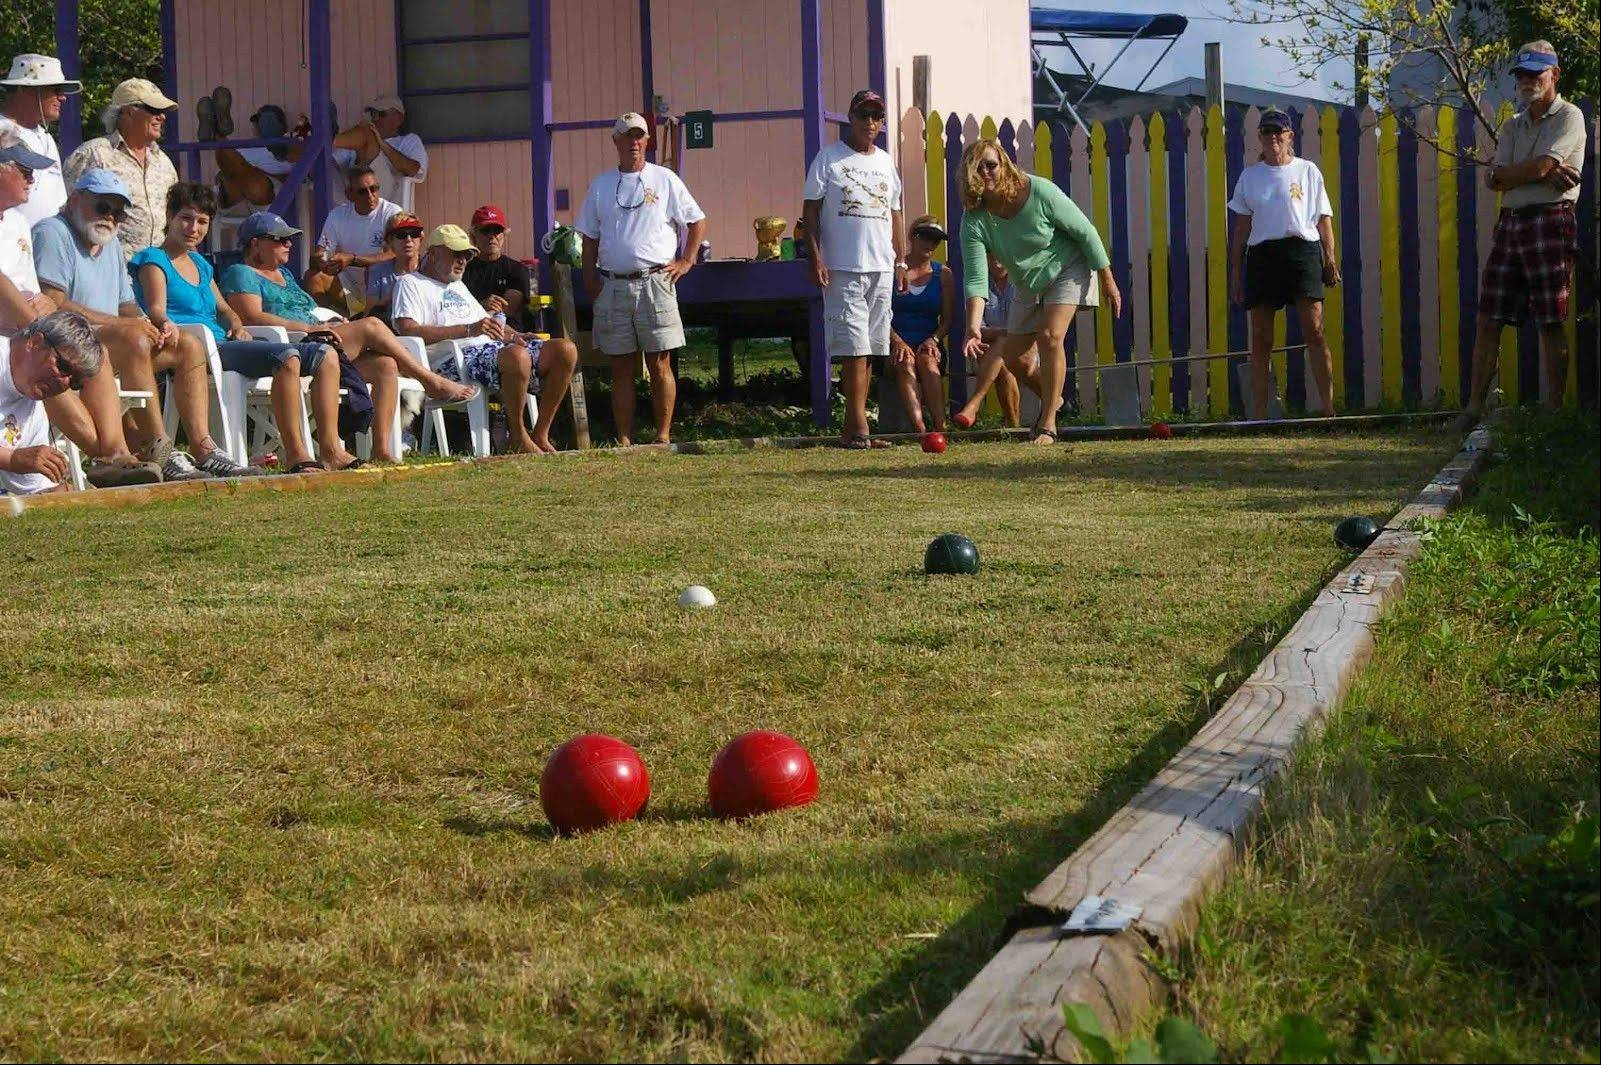 The side of the deck is a great place for an activity area, such as a bocce court.